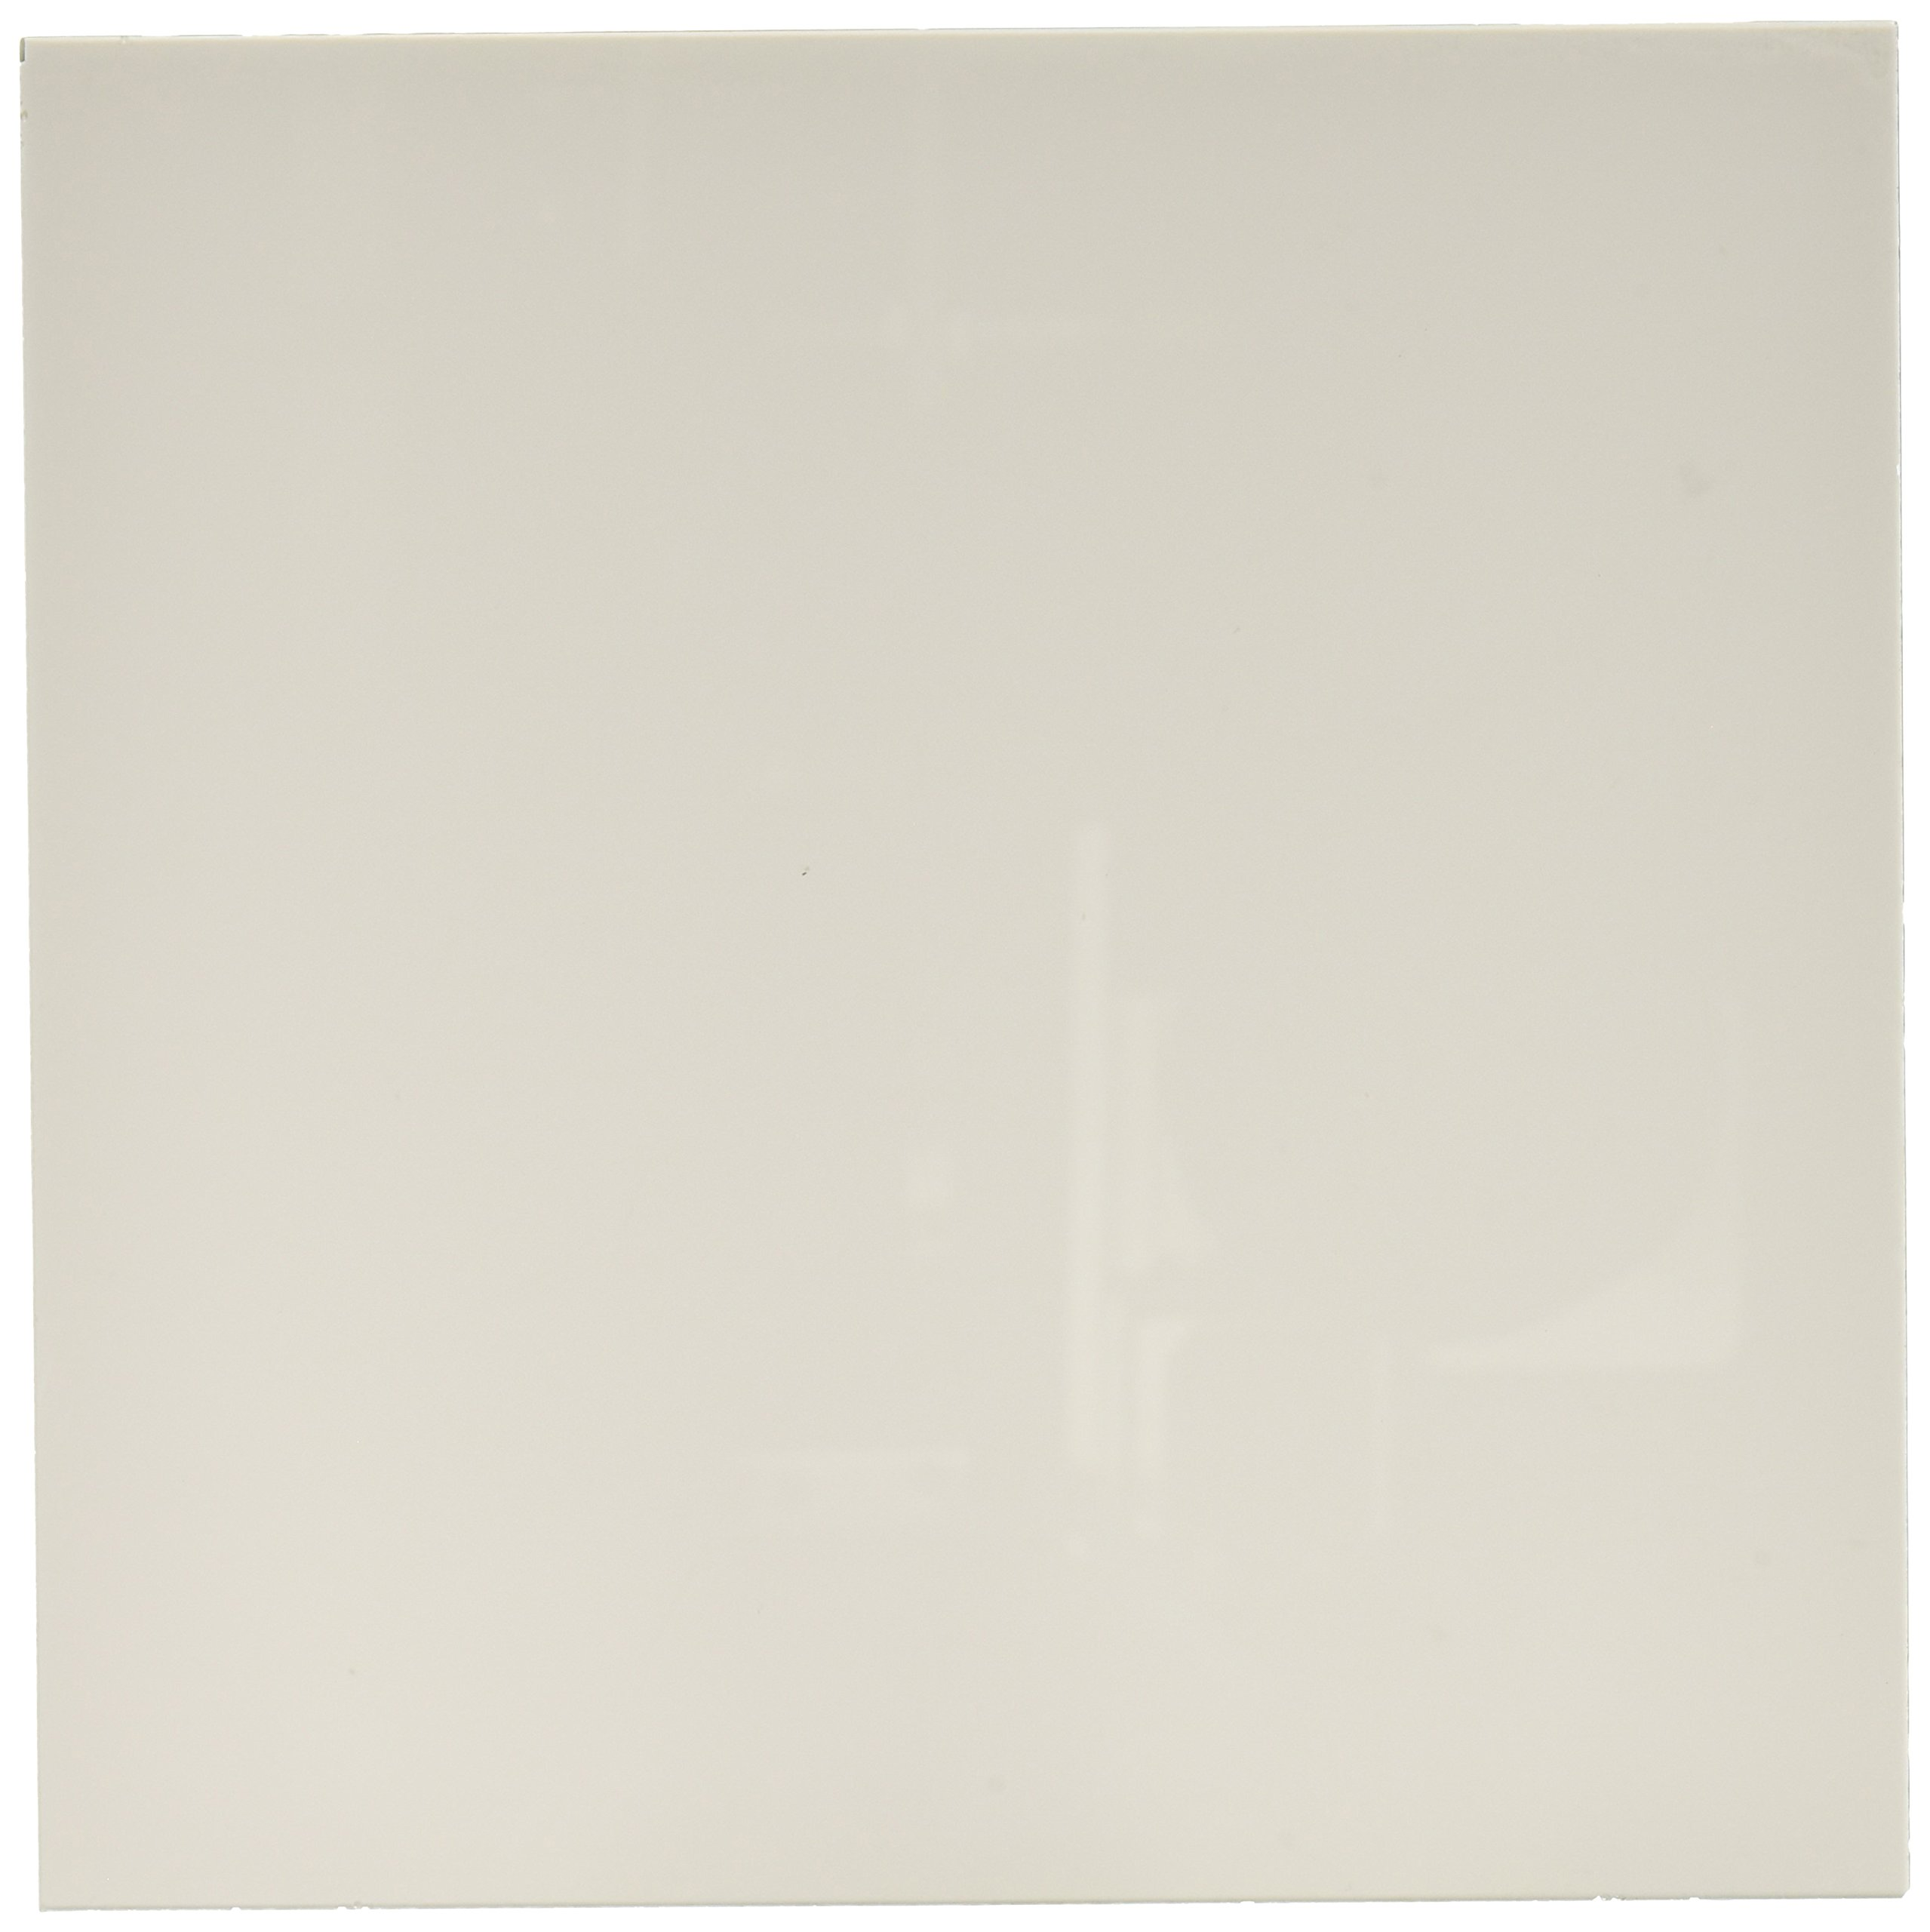 EMD Millipore 1.05715.0001 Glass Backed TLC Classical Silica Plate, 250µm Thick Silica Gel 60 F254, 20cm Width, 20cm Length (Case of 25)